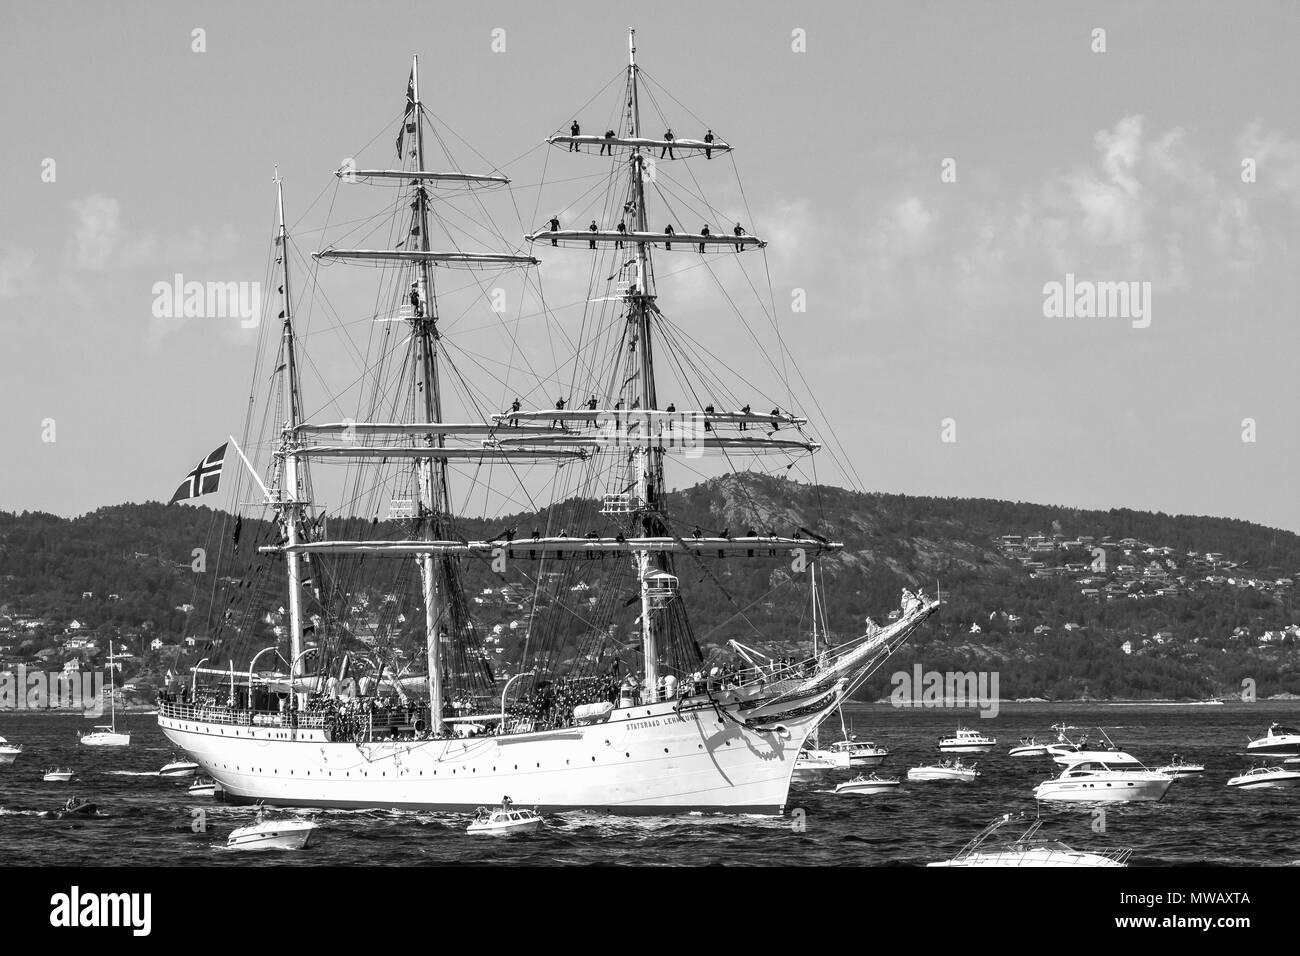 Tall Ships Race Bergen, Norway 2014.  Norwegian three-masted barque ''Statsraad Lehmkuhl'' arriving Byfjorden, Bergen with an armada of small boats. - Stock Image